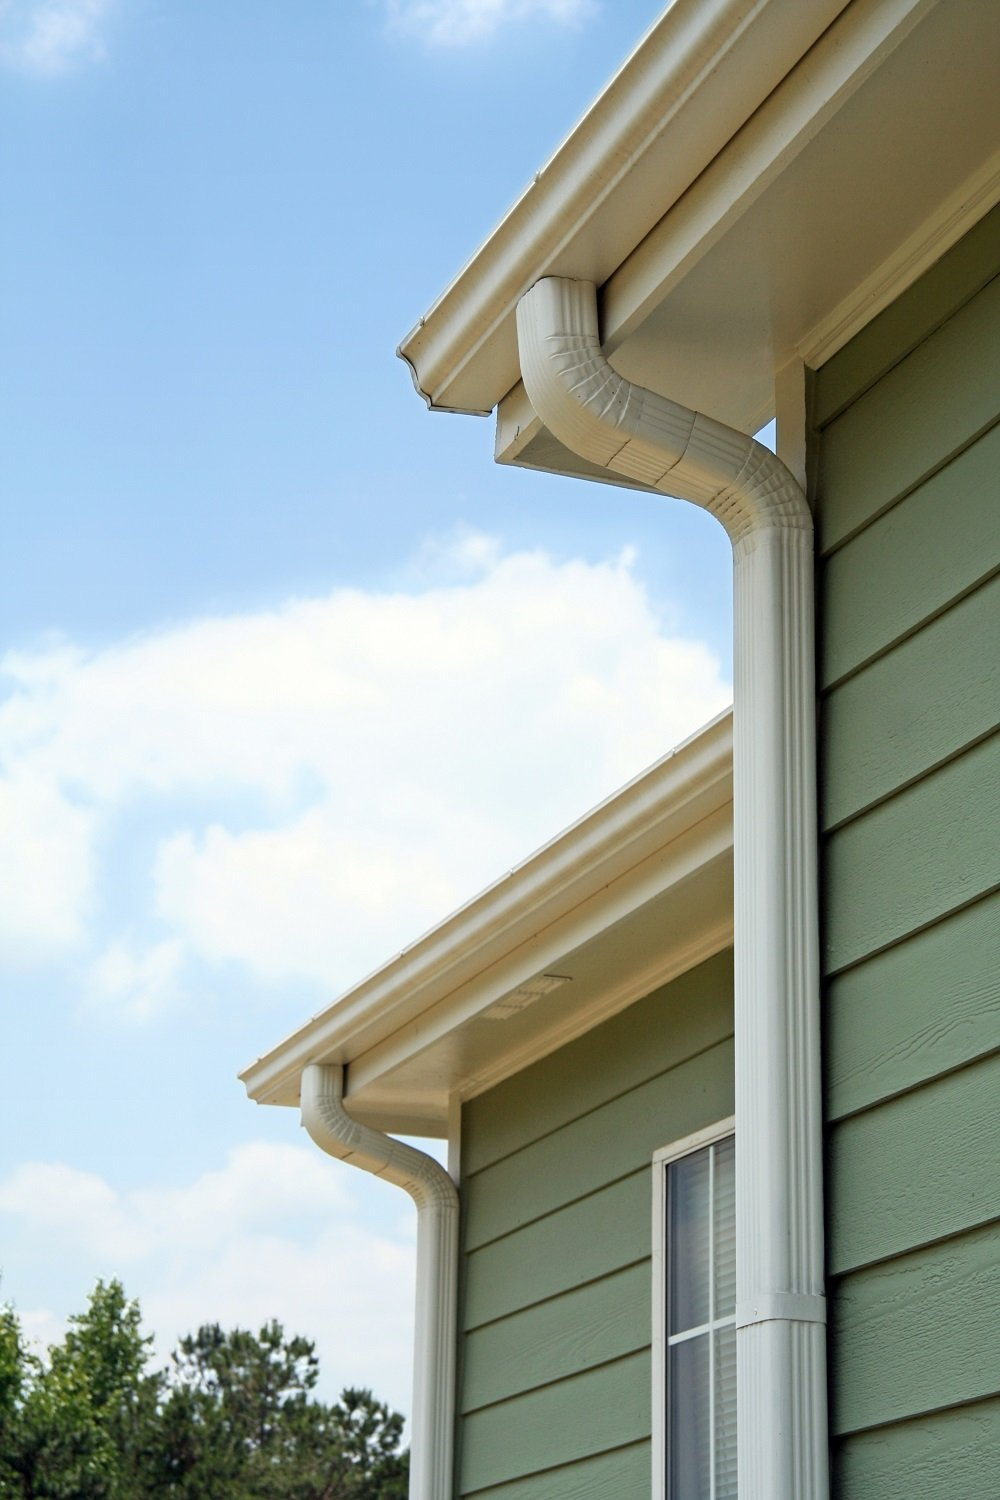 How much to charge for gutter installation - Gutter Installation